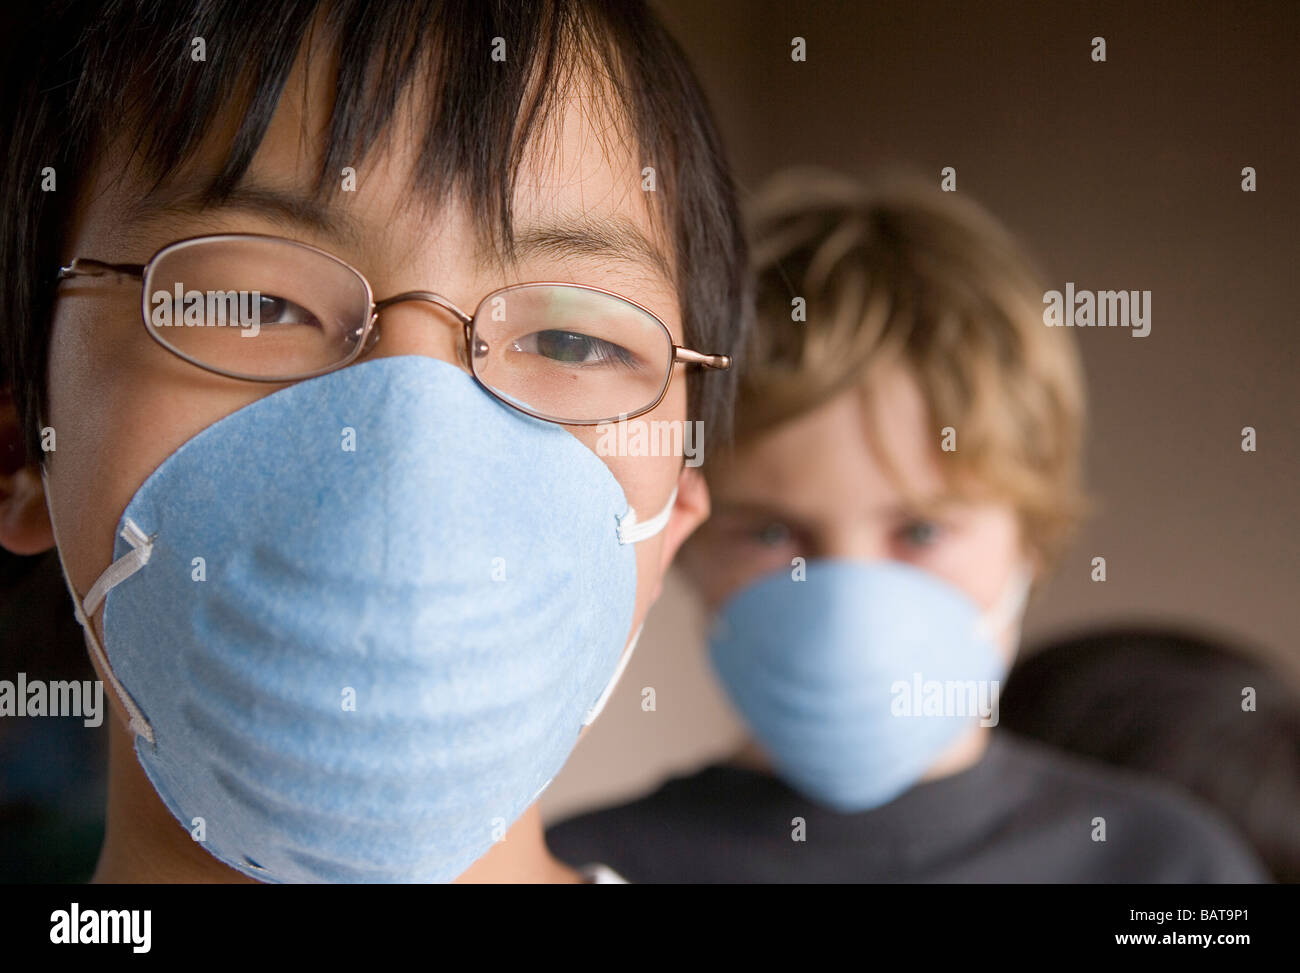 closeup of two children, ages 12 and 10 wearing masks - Stock Image